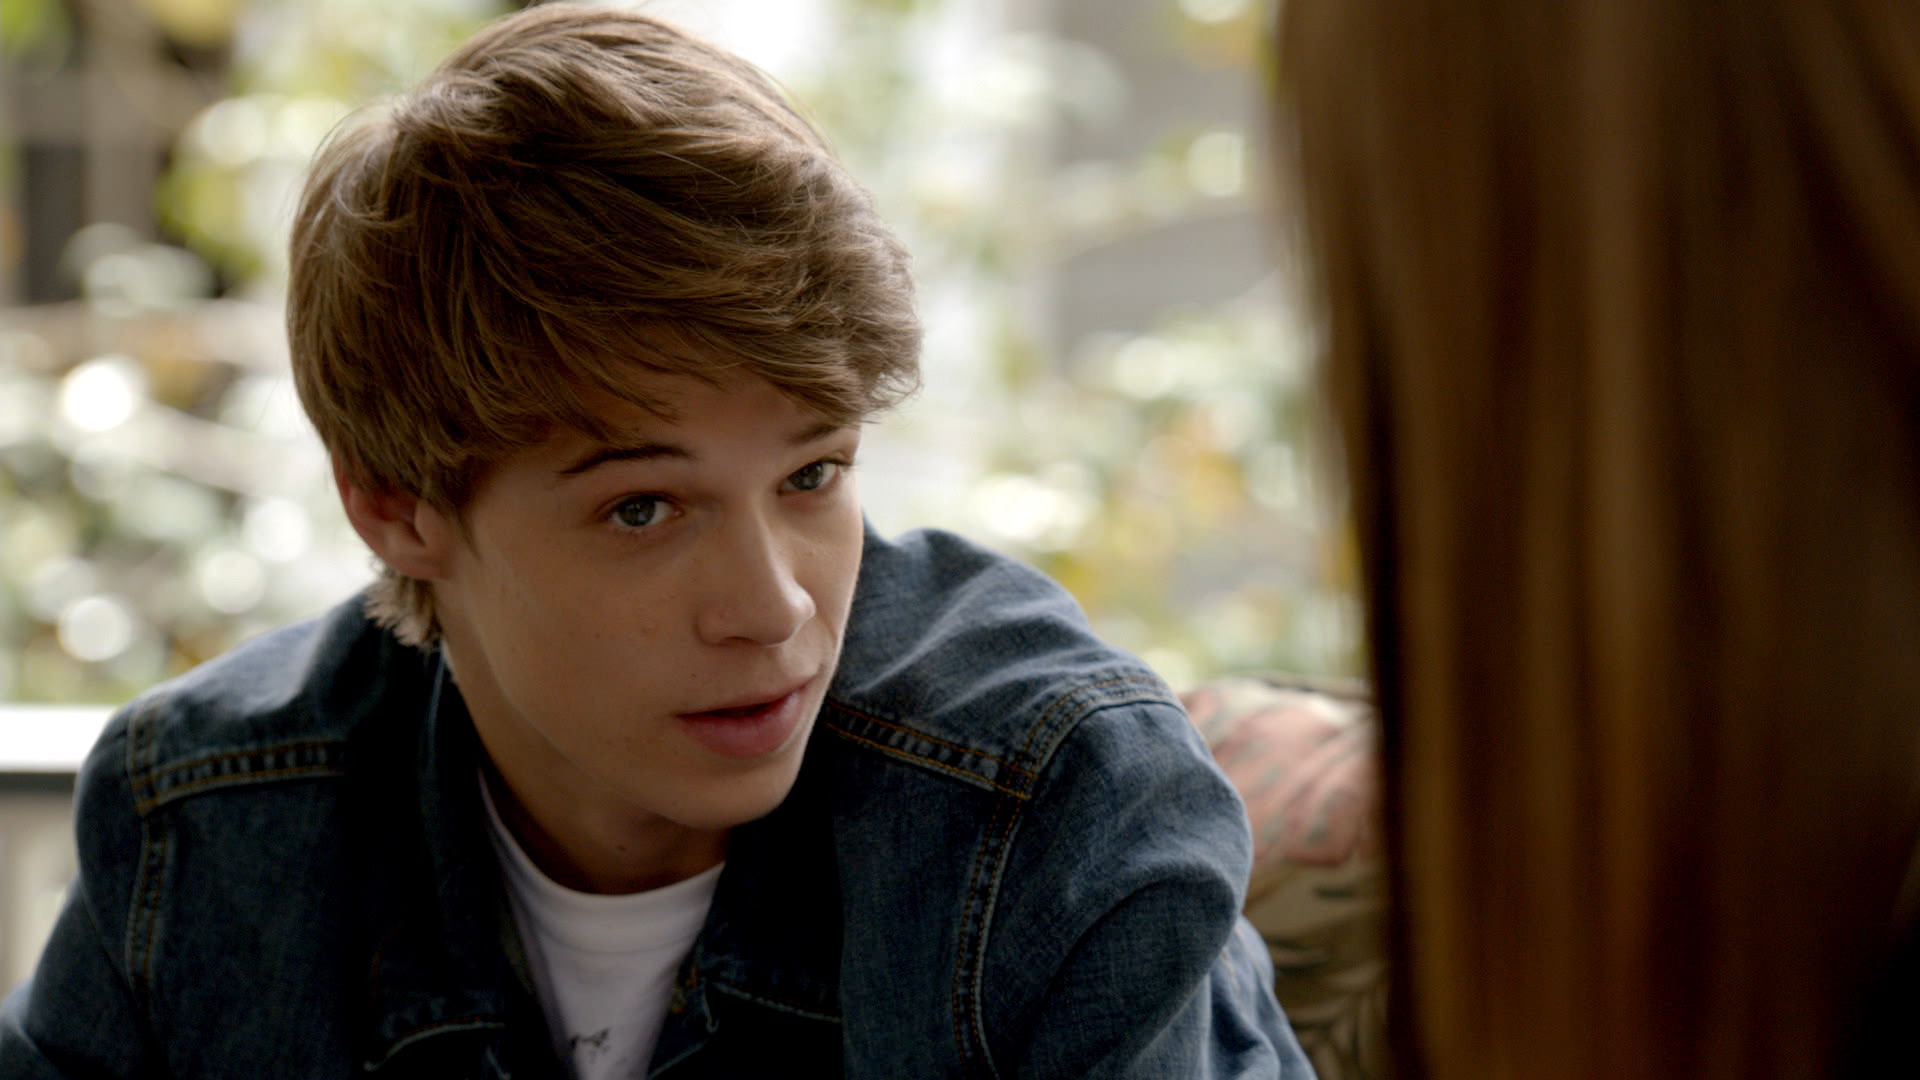 20. Colin Ford was born in Tennessee.